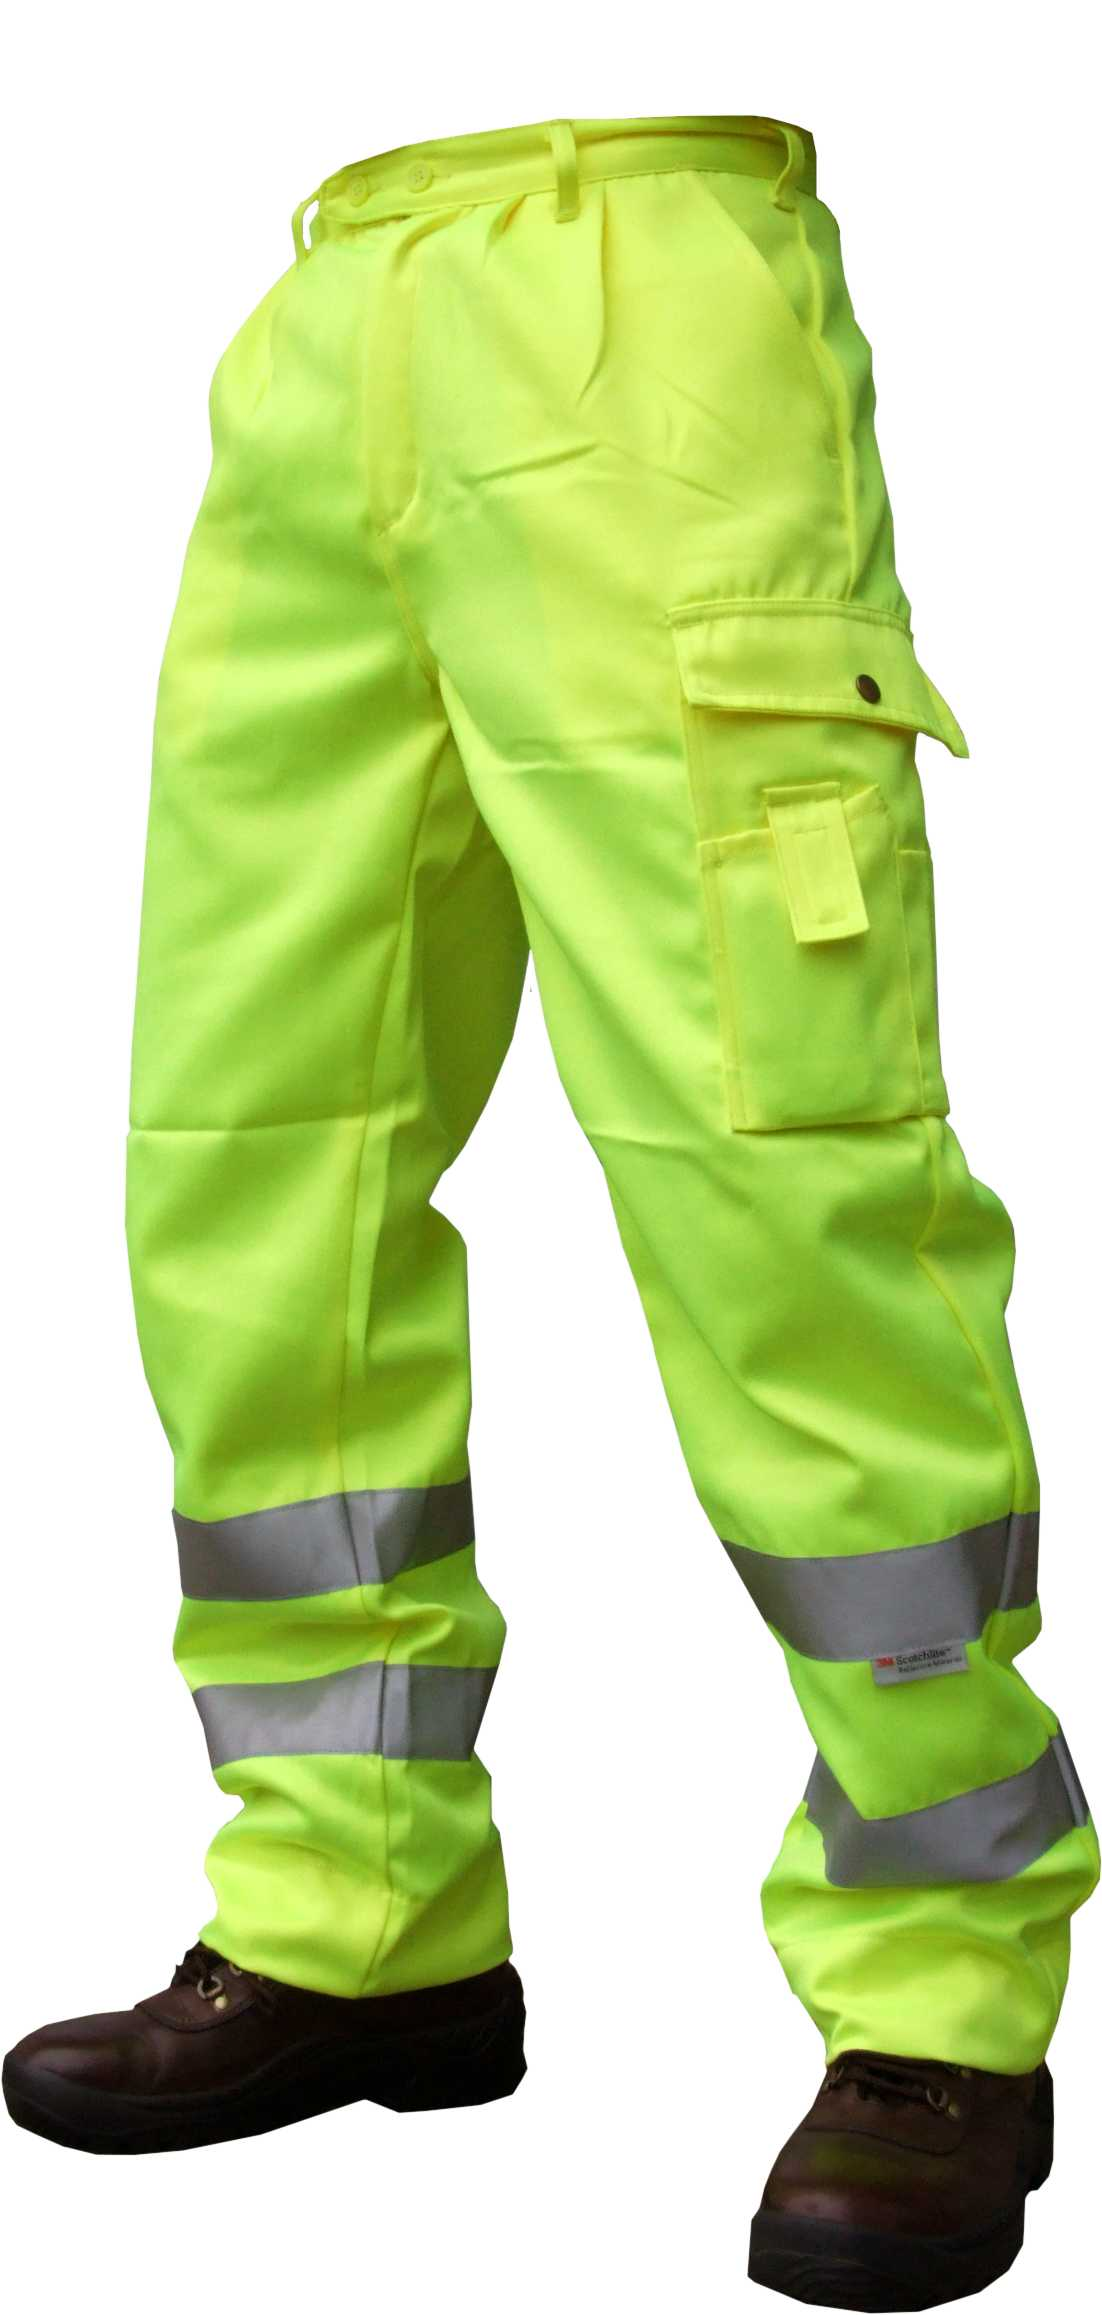 bodyguard-Trousers-High-Vis-Yellow-Cargo-Trousers